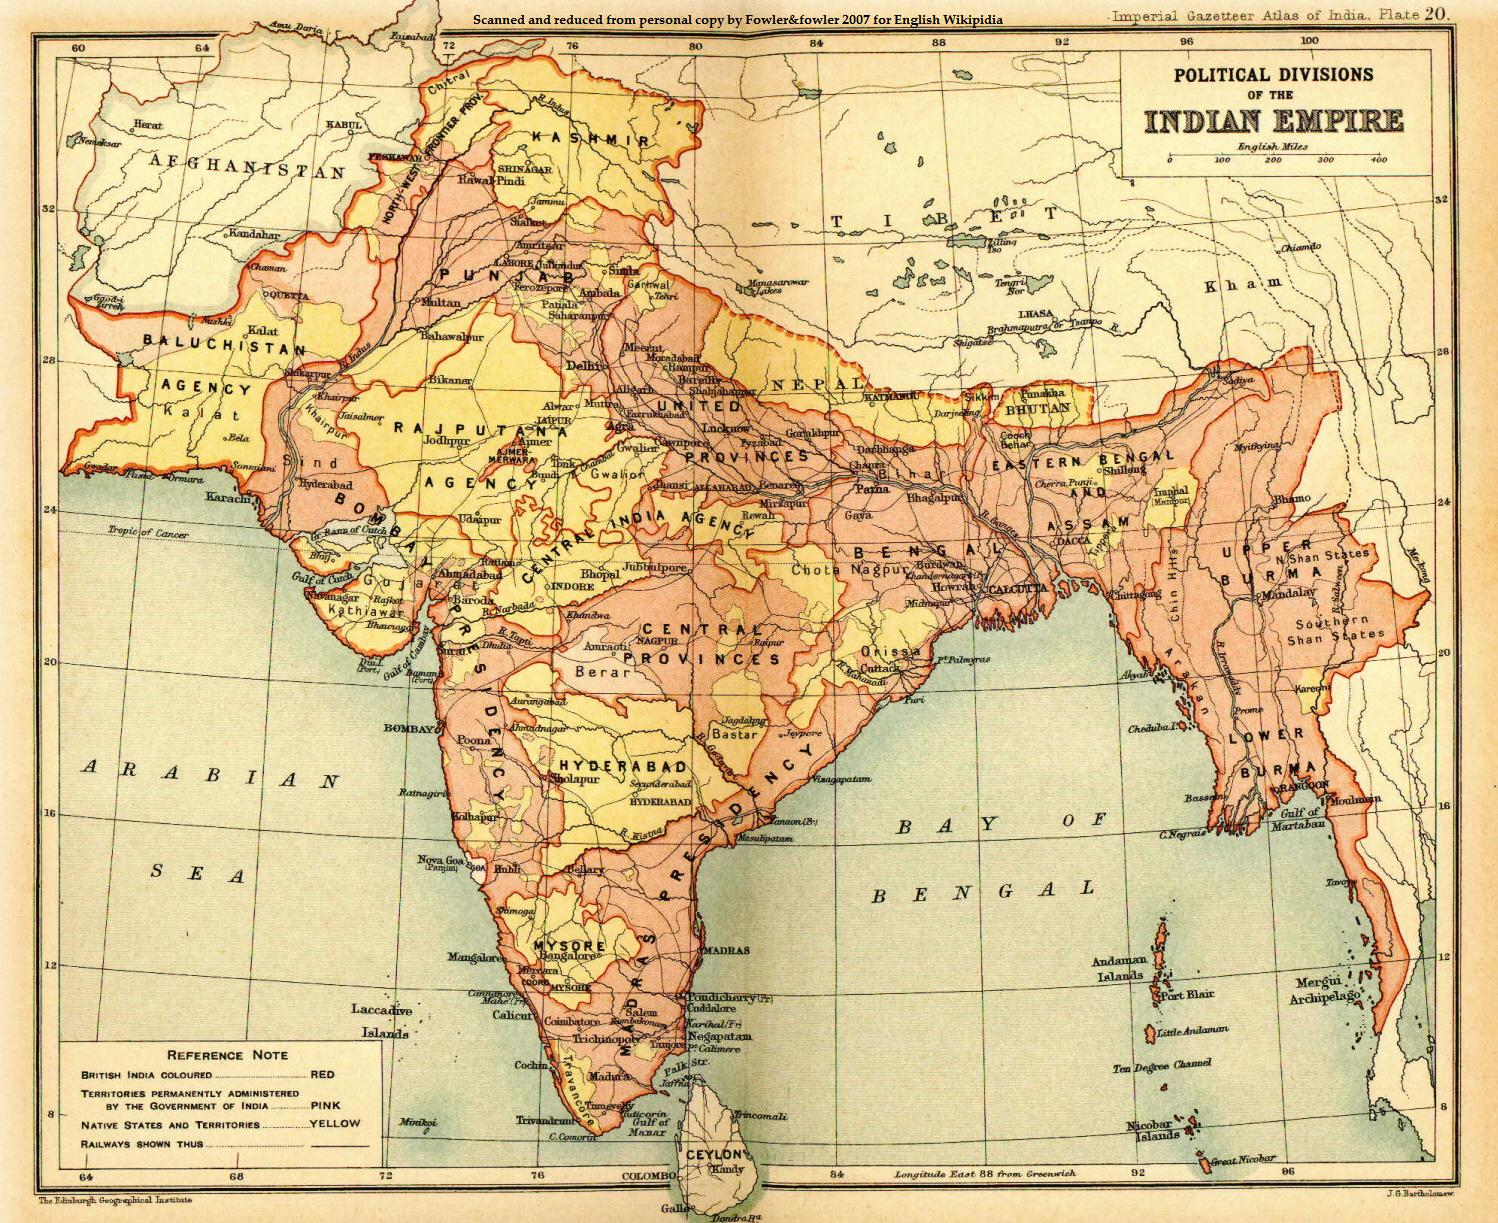 British Empire India